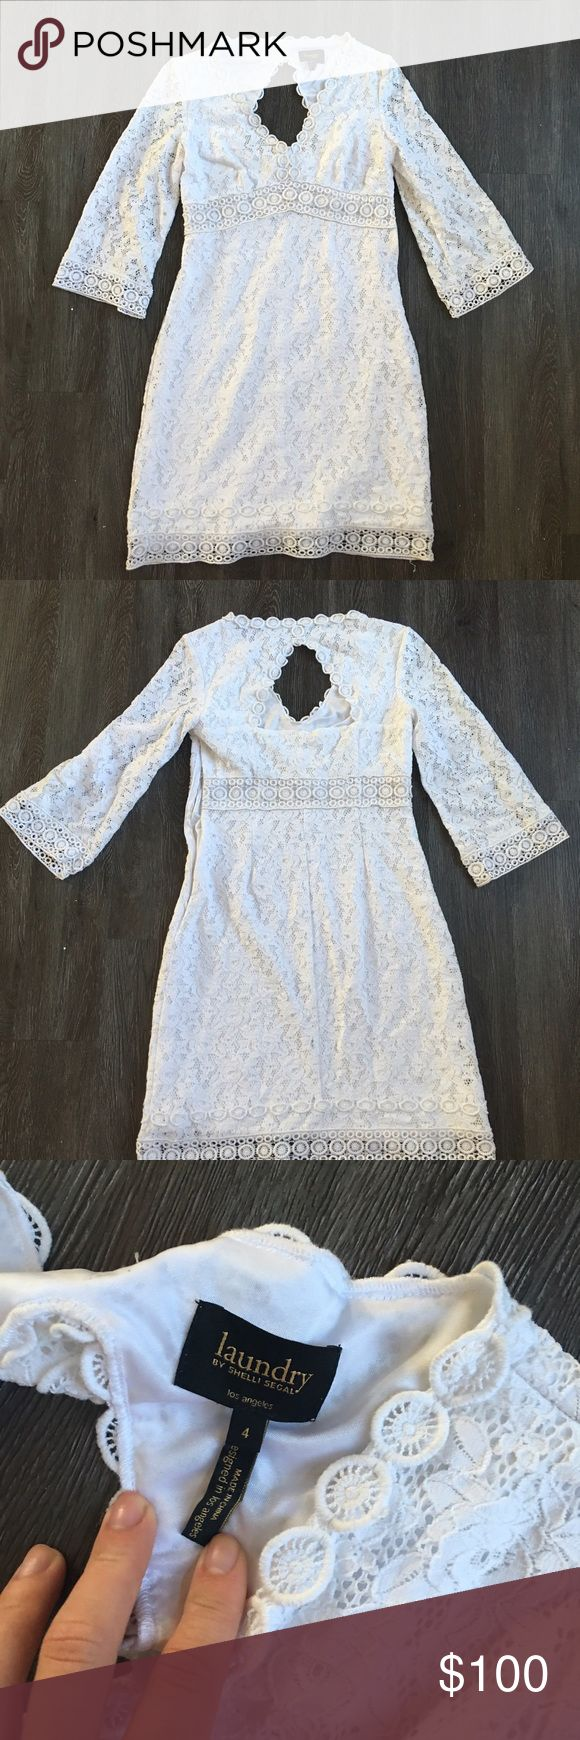 Laundry by Shelli Segal White Lace Dress Laundry by Shelli Segal White Lace Dress. Size 4. Worn once. Laundry by Shelli Segal Dresses Long Sleeve